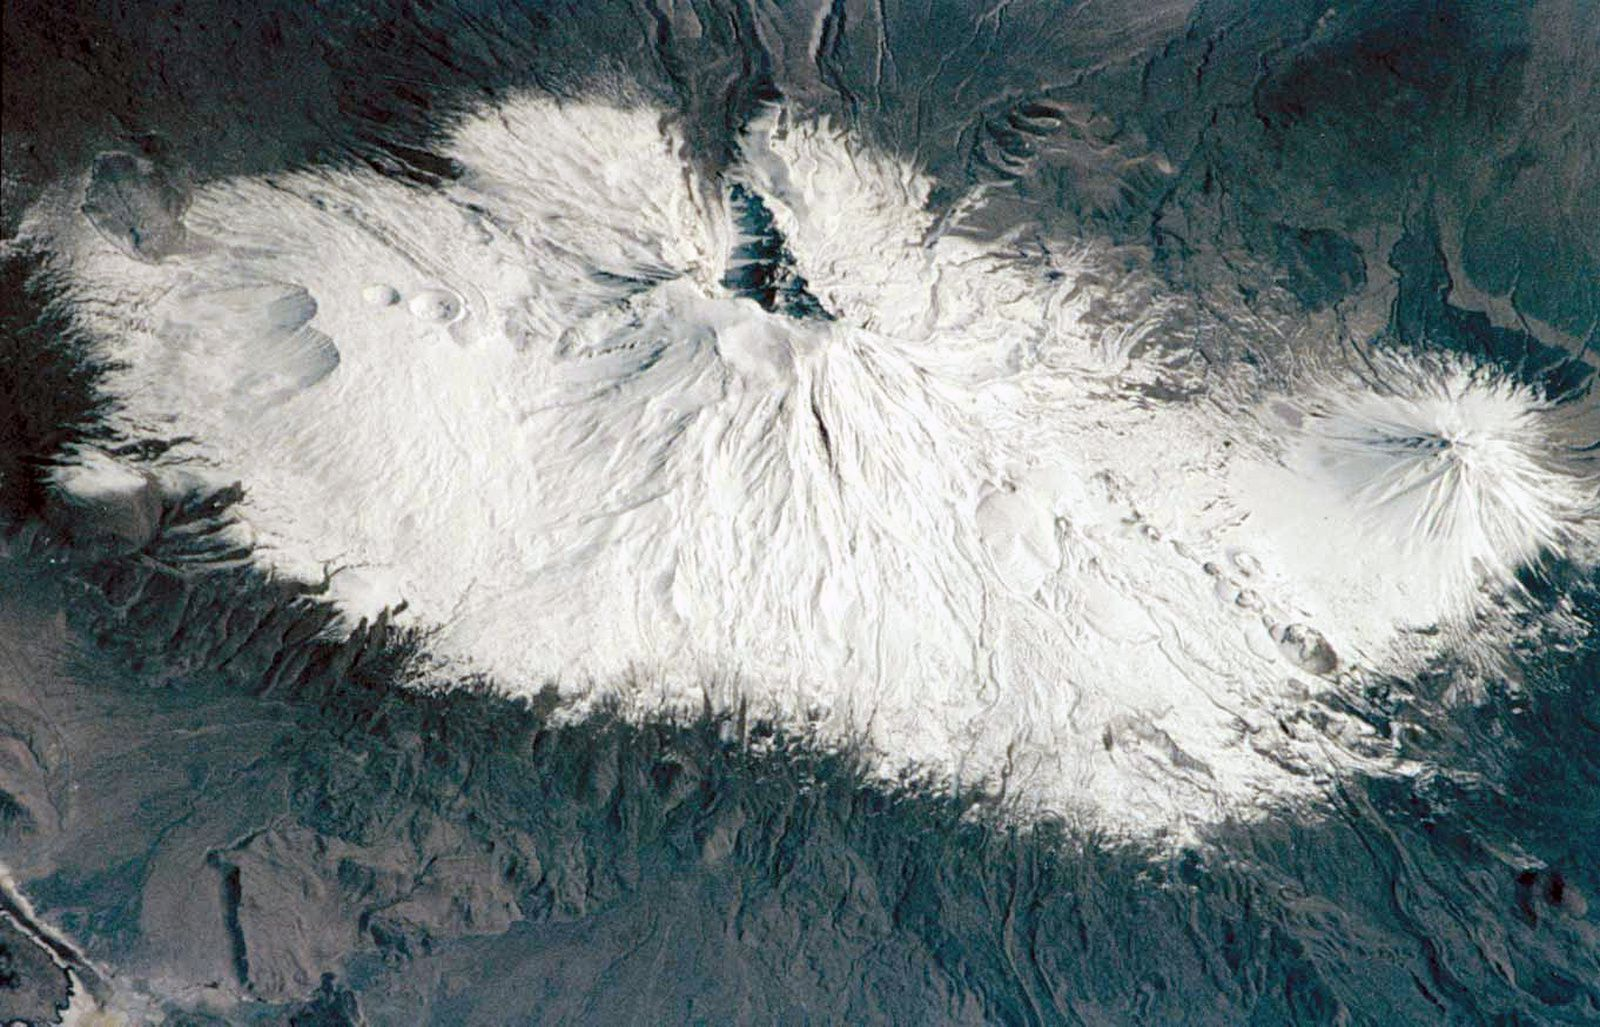 Ararat seen from the space shuttle in 2001 - Great Ararat, center - Lesser Ararat, right - photo Earth Sciences and Image Analysis Laboratory, NASA Johnson Space Center, 2001 in GVP